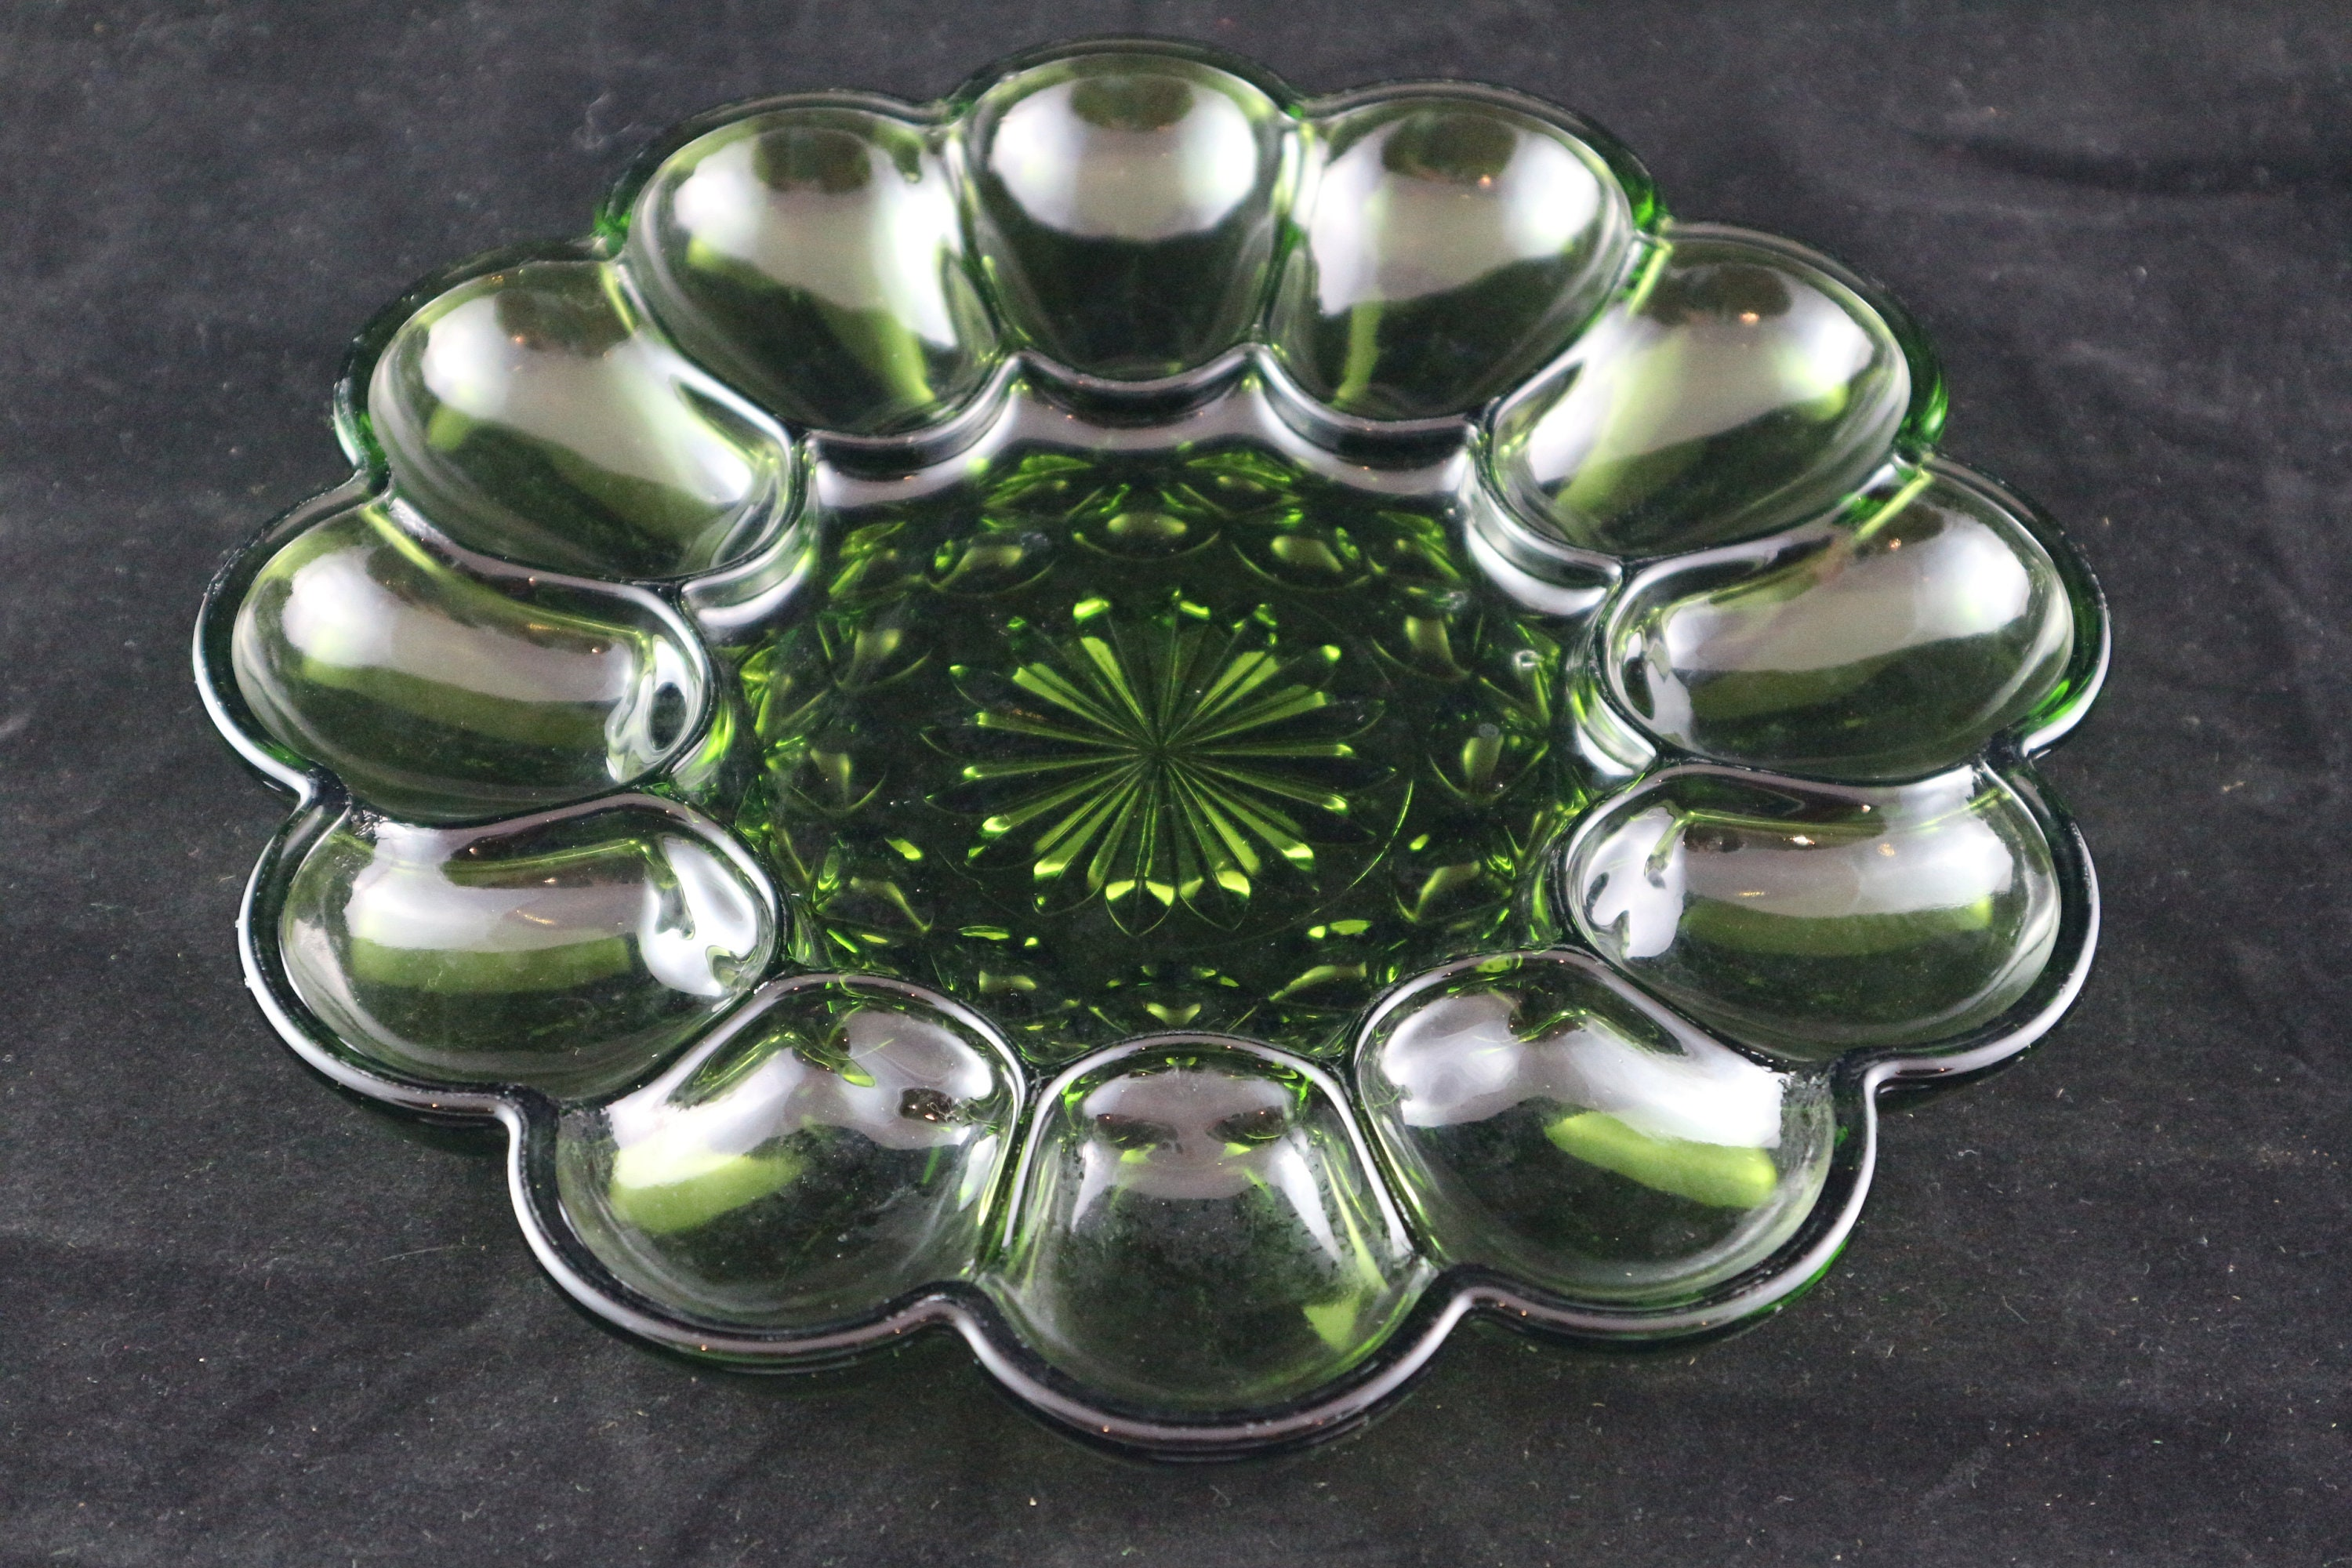 20th Century Just 1950s Bowl Anbiet Shell Rockabilly Design Vintage Serving Plate 50s Glass Sale Price Antiques